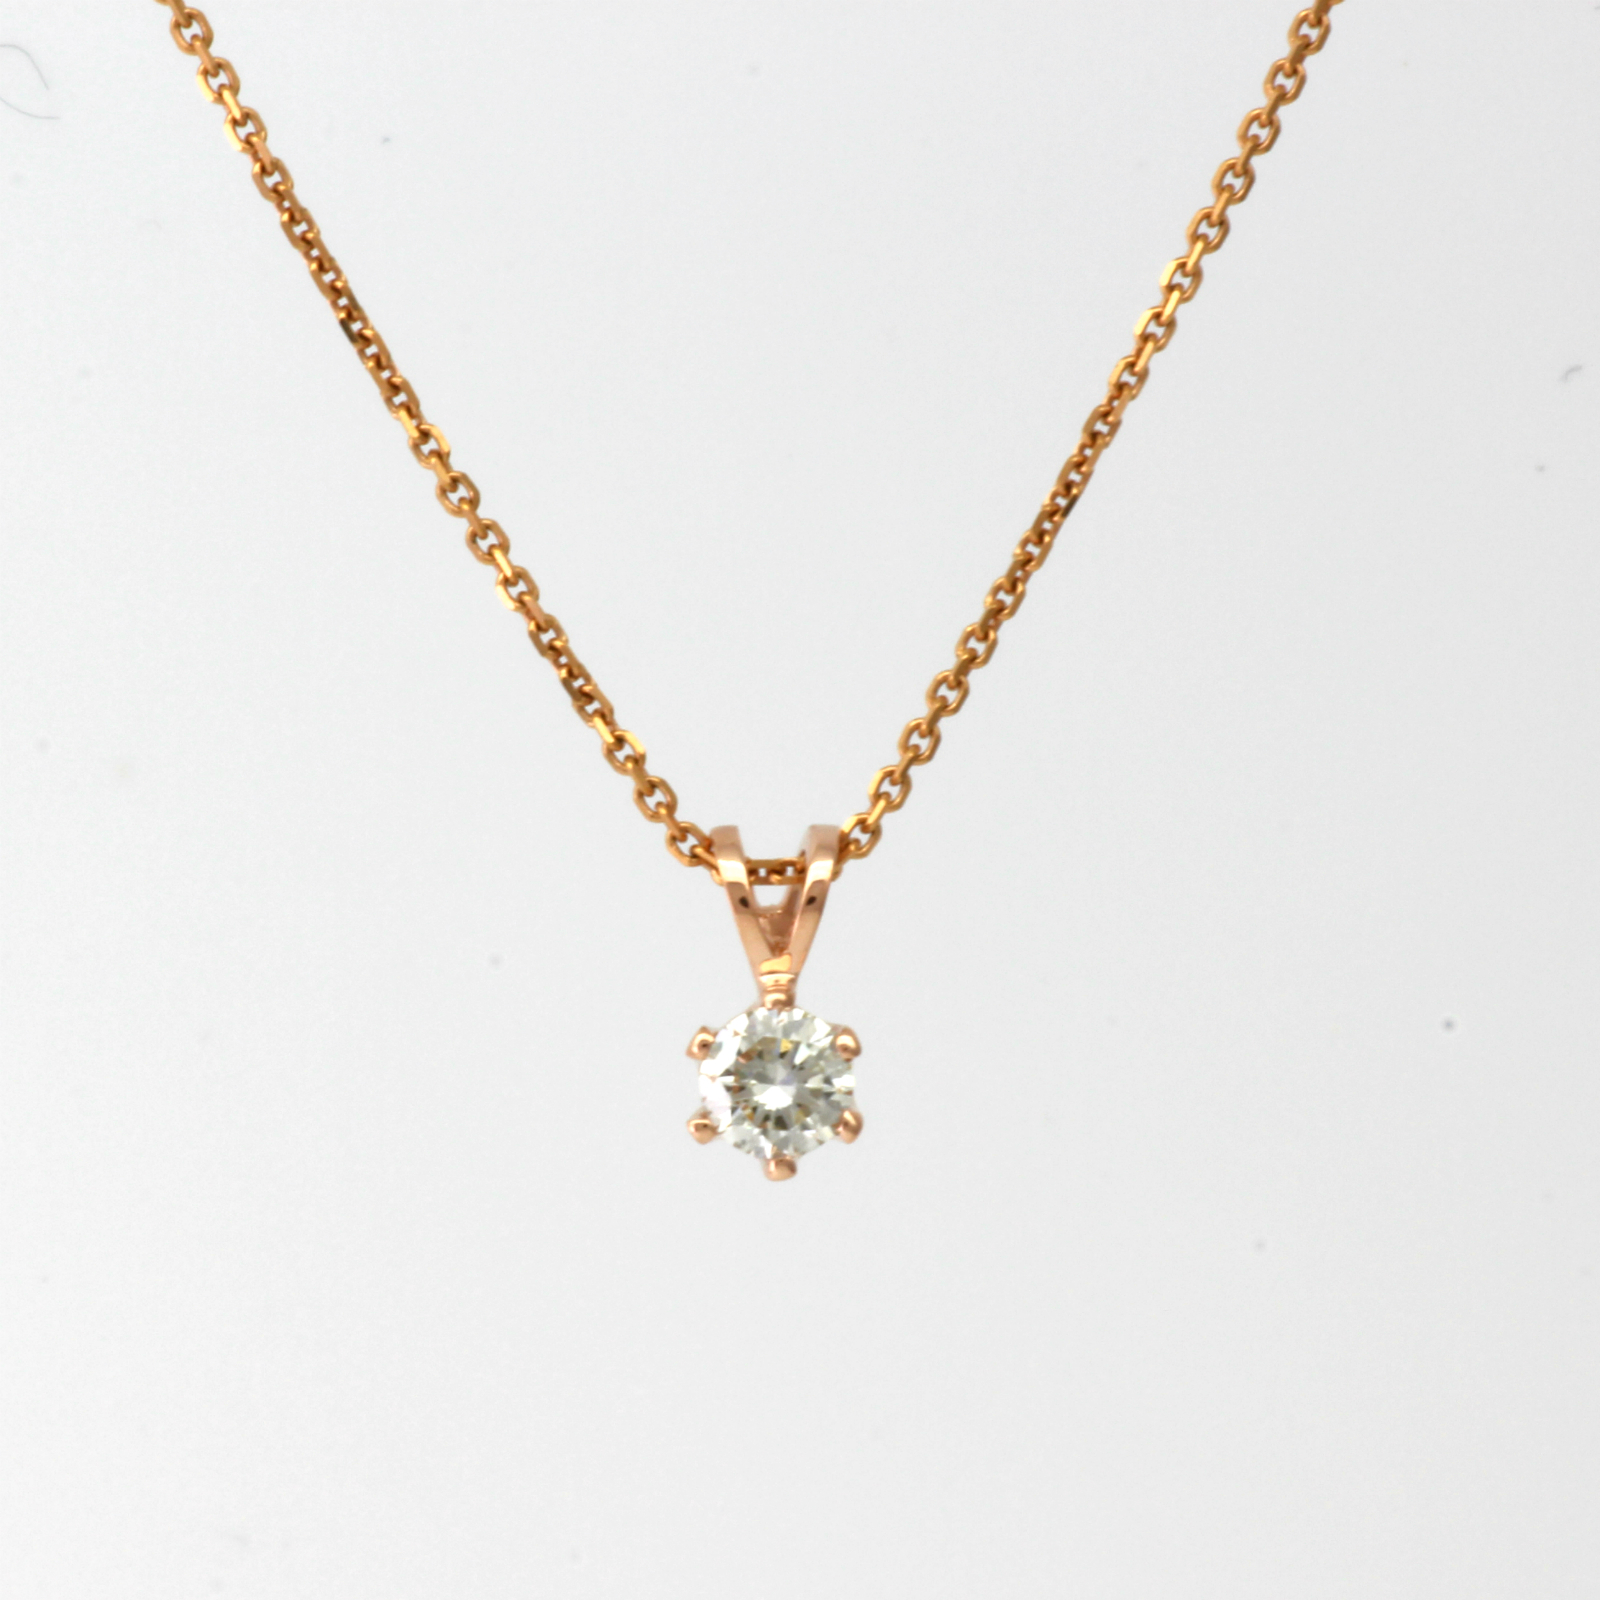 Necklace round diamond pendant 1 ct vs1 14k rose gold red natural pendant details aloadofball Gallery